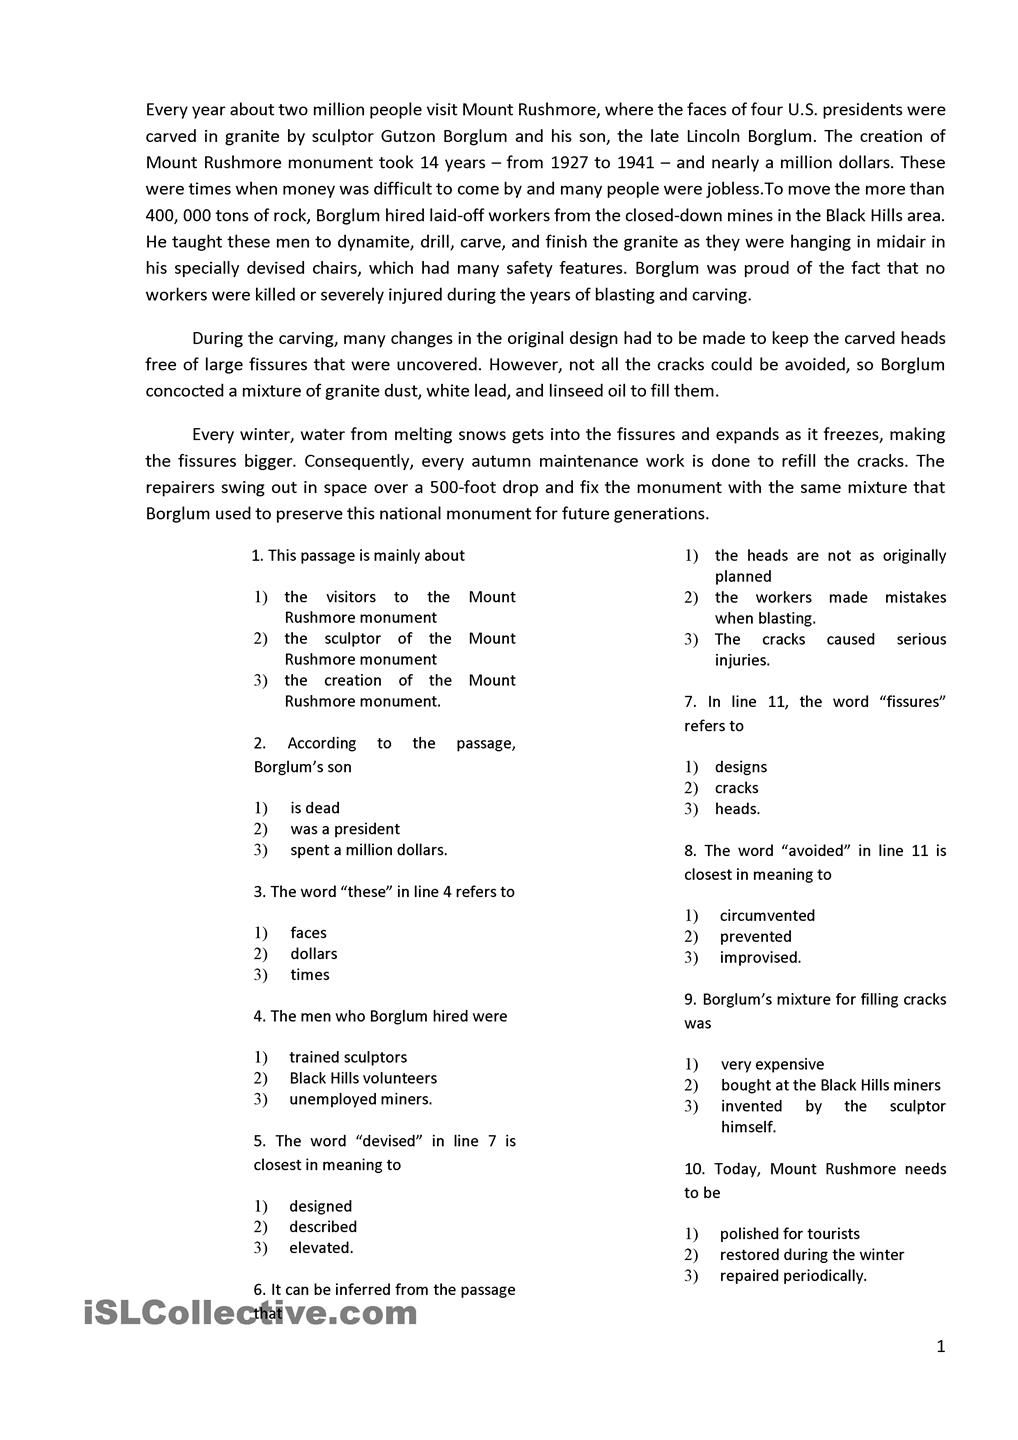 worksheet Fifth Grade Reading Comprehension Worksheets reading with 10 multiple choice questions esl 2 pinterest questions